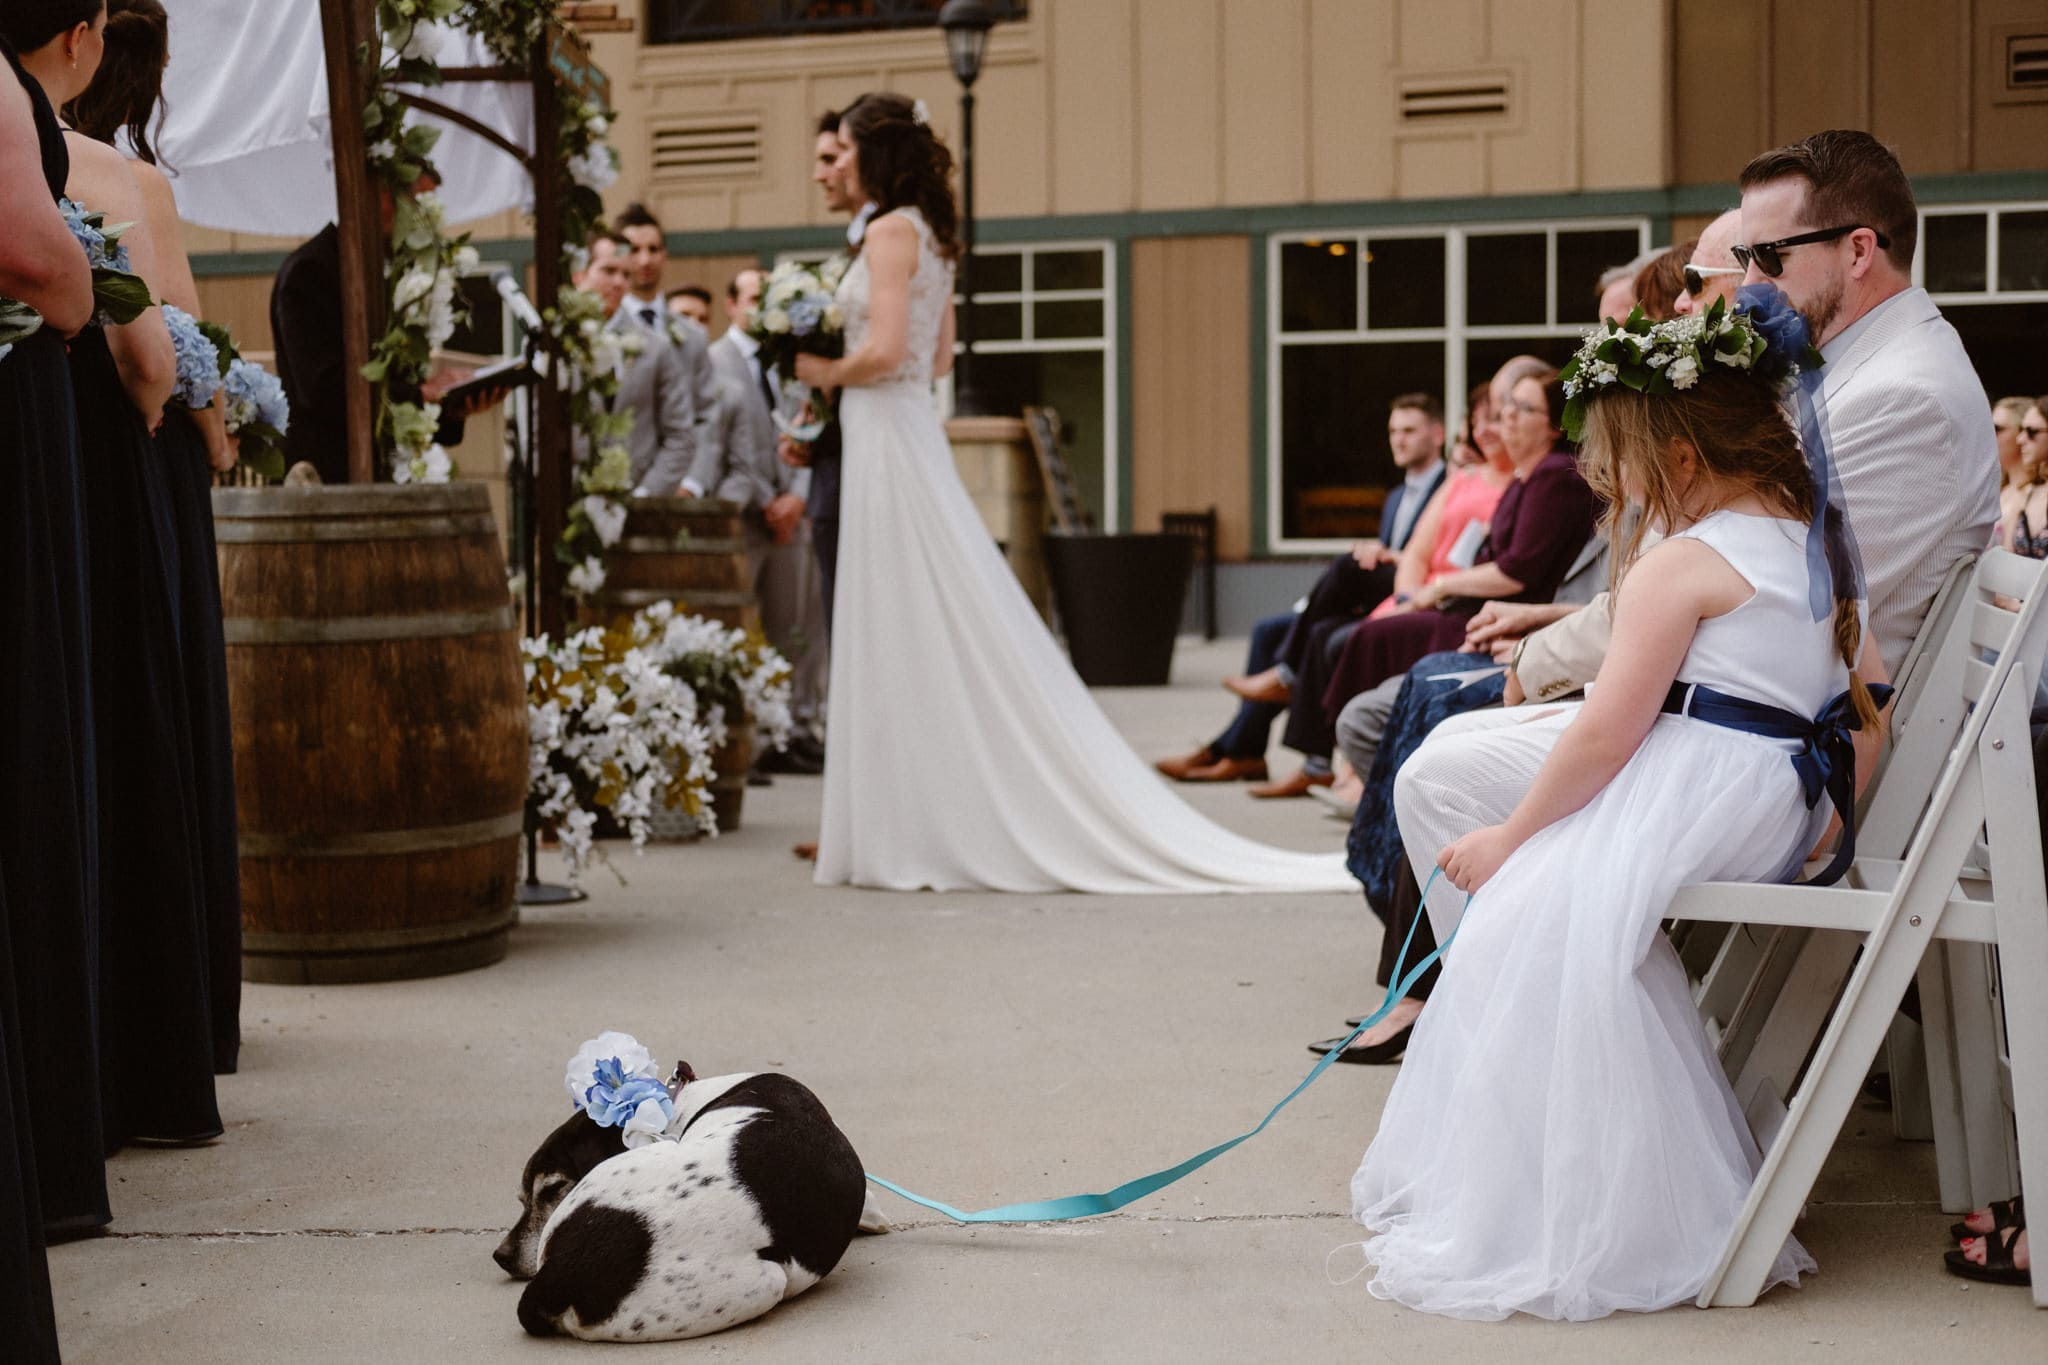 Dog watching parents get married at Main Street Station wedding in Breckenridge, Colorado